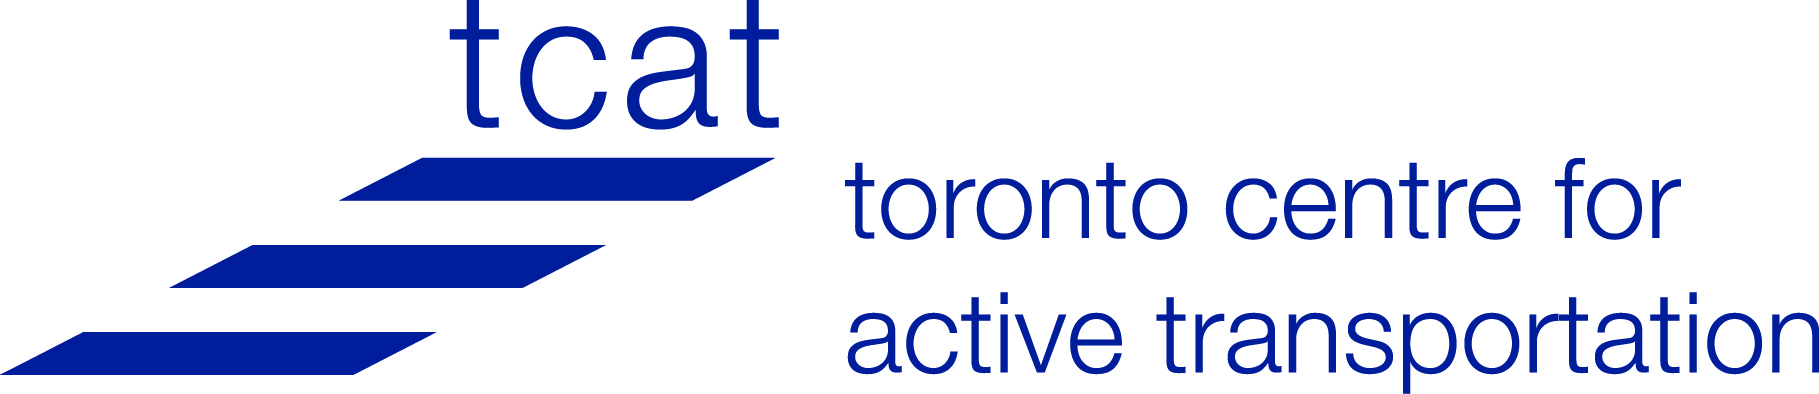 Toronto Centre for Active Transportation